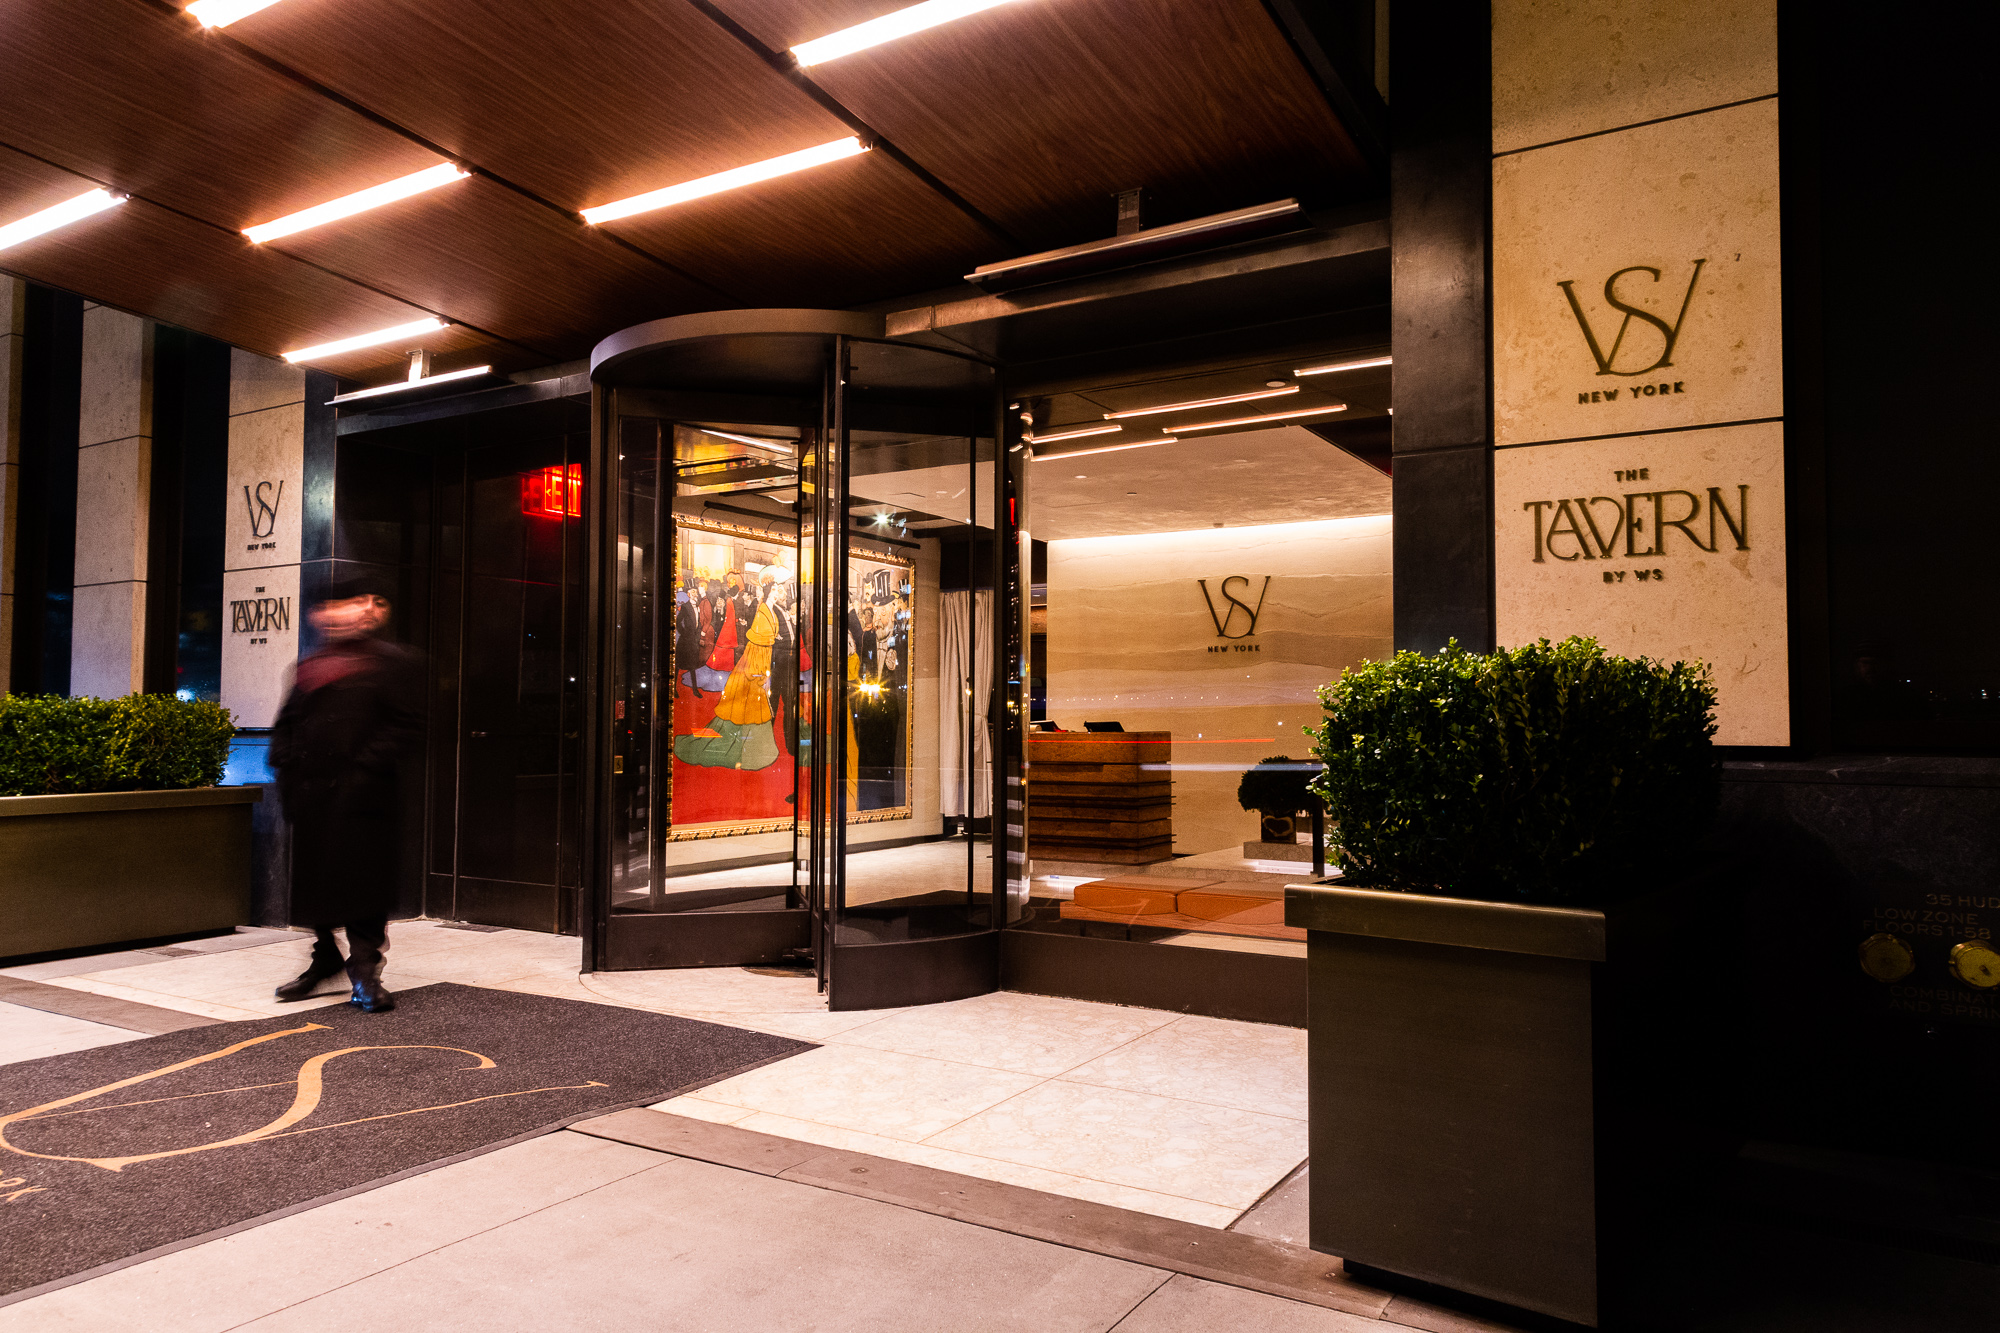 <exterior image of entrance to the club and tavern at WS New York